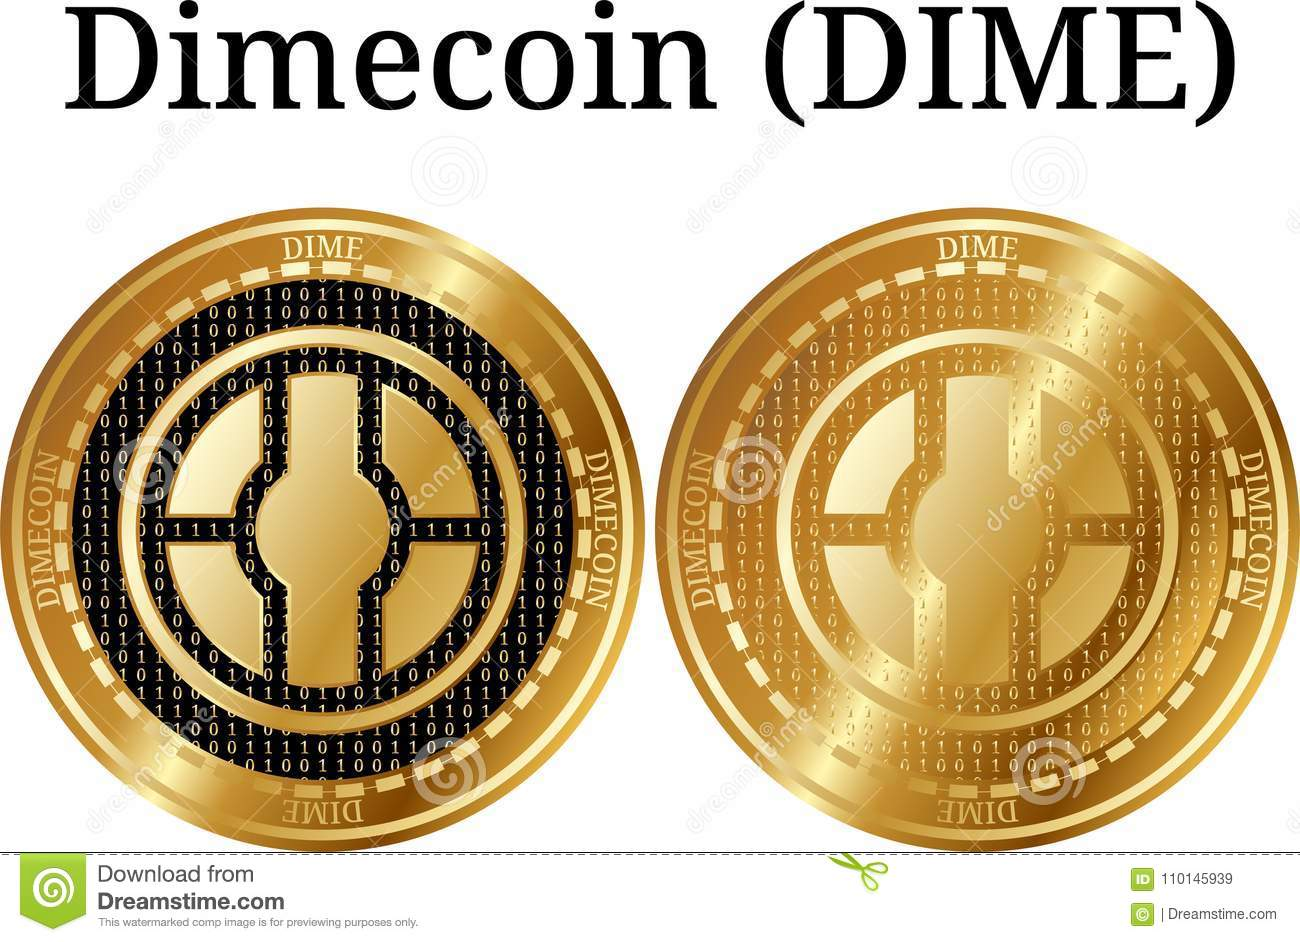 Dime coin cryptocurrency offtrackbettingsites